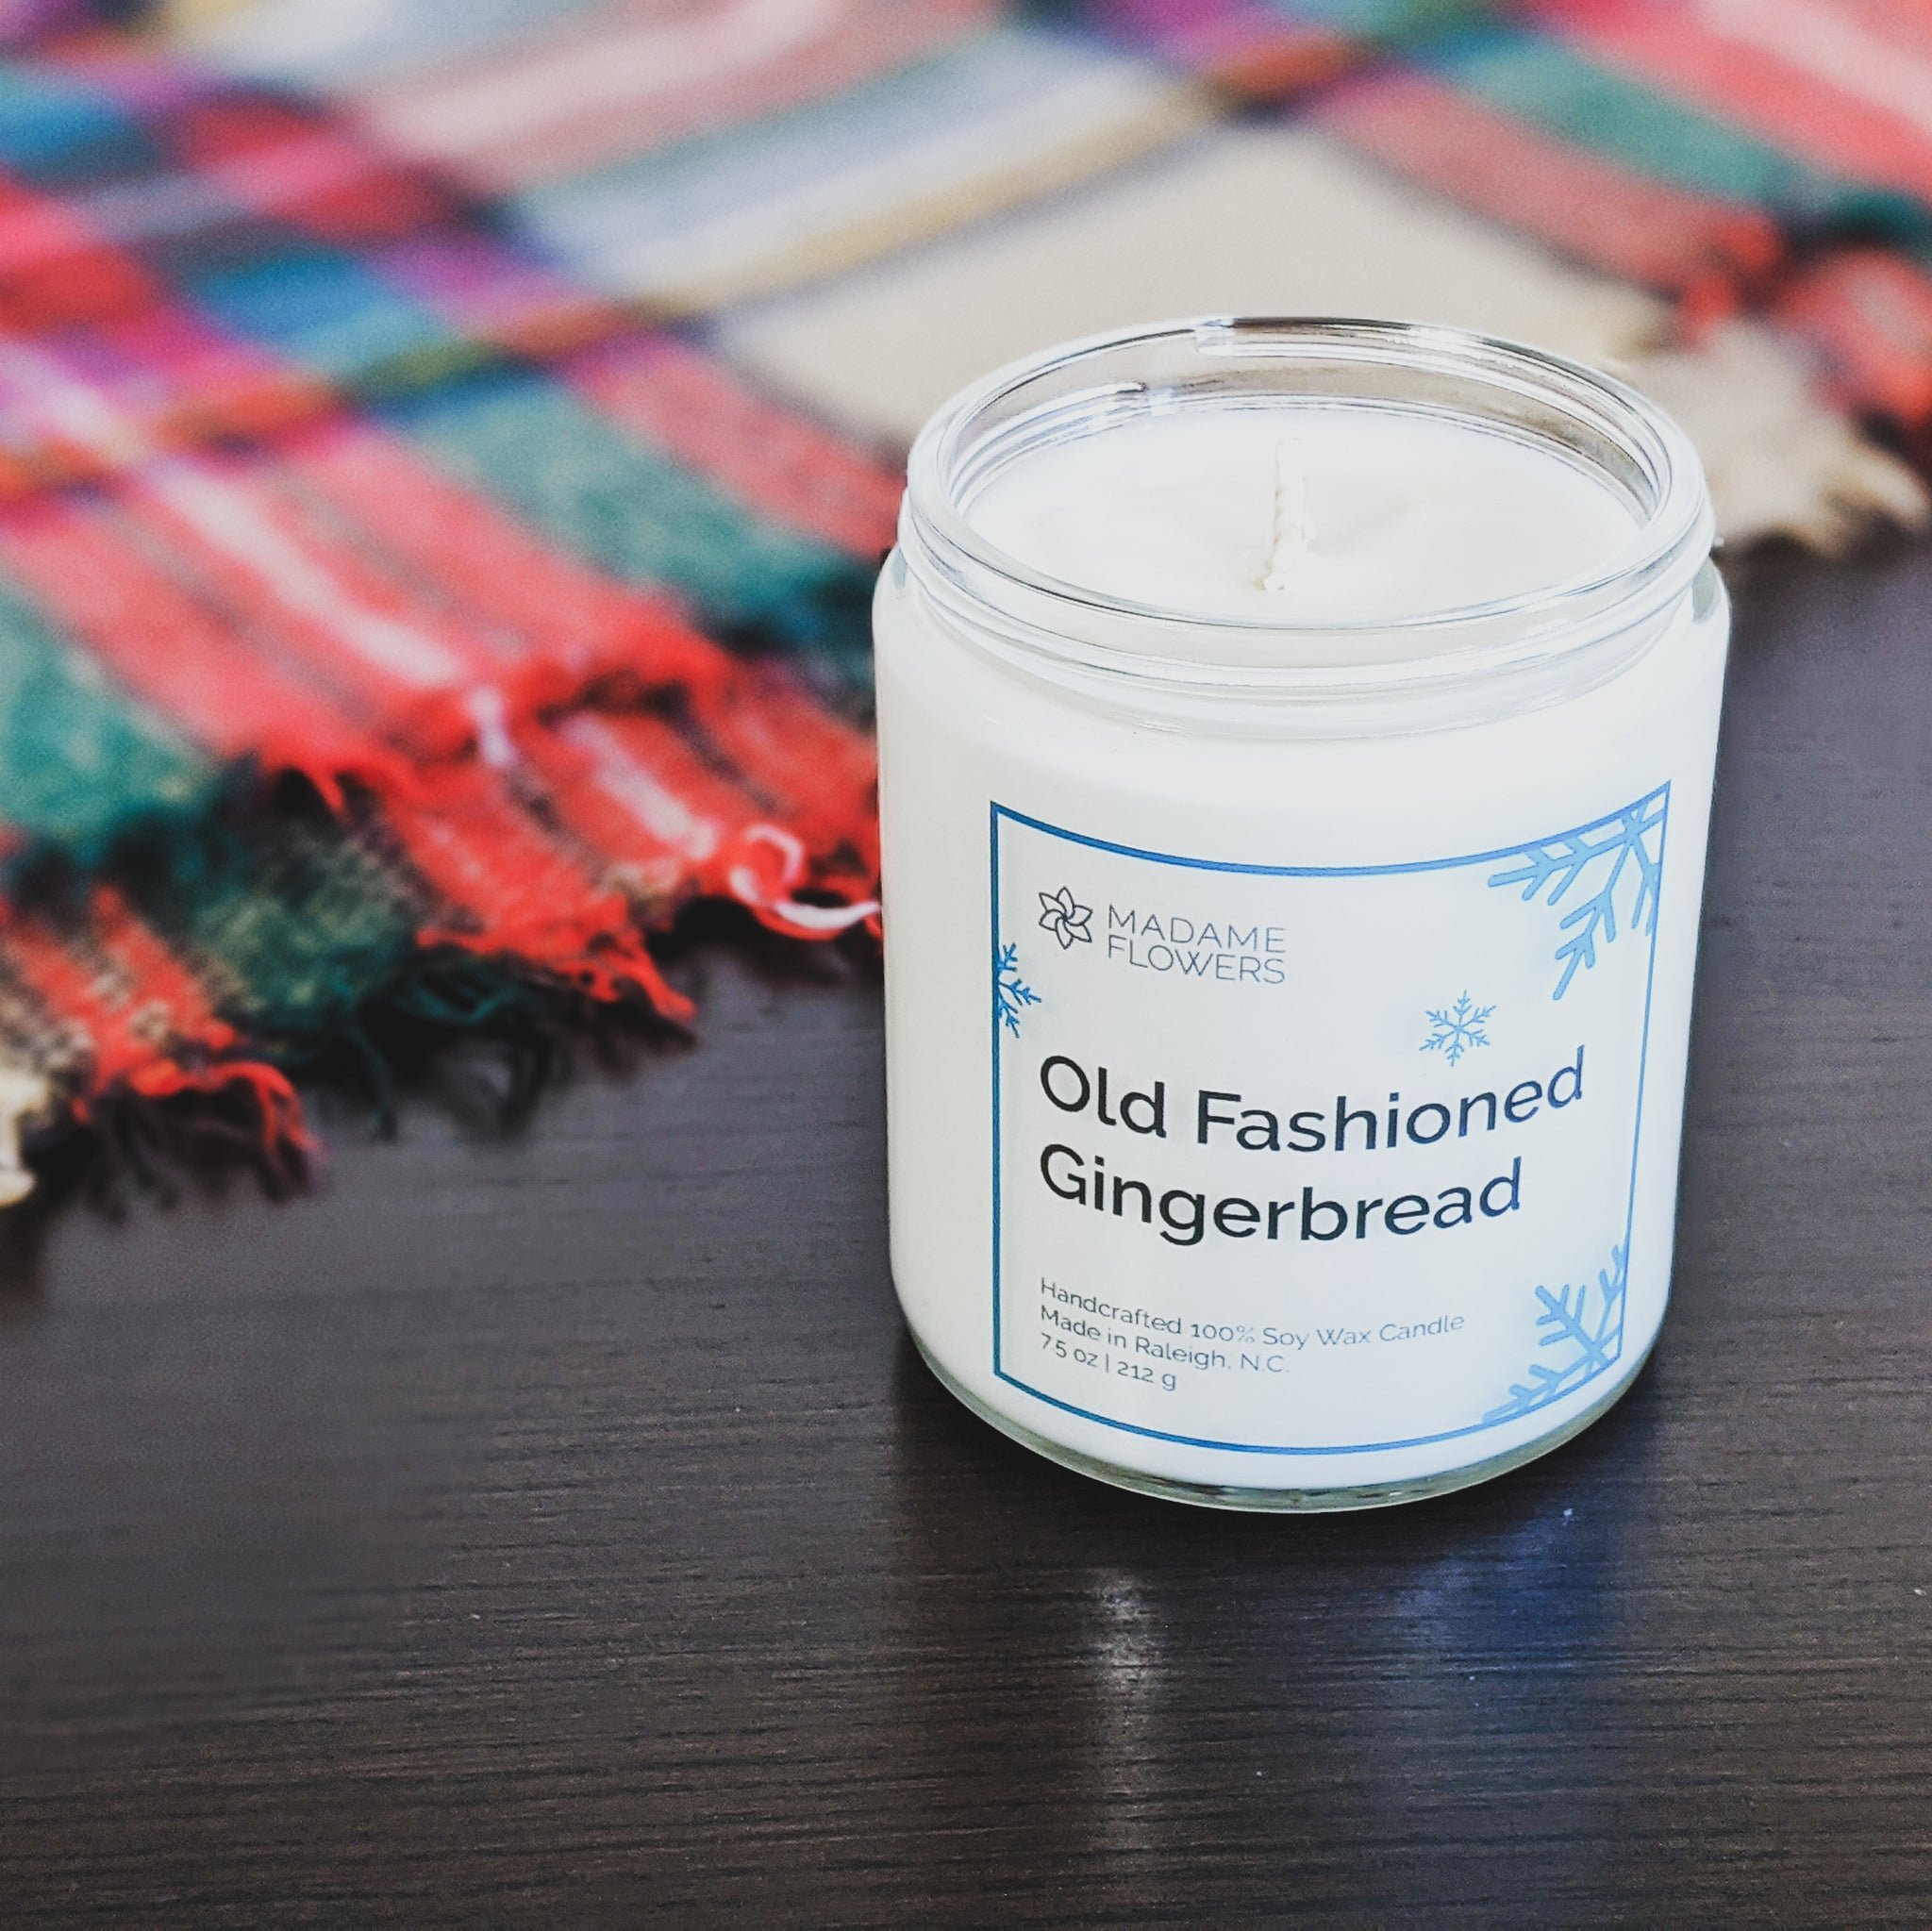 Old Fashioned Gingerbread Candle